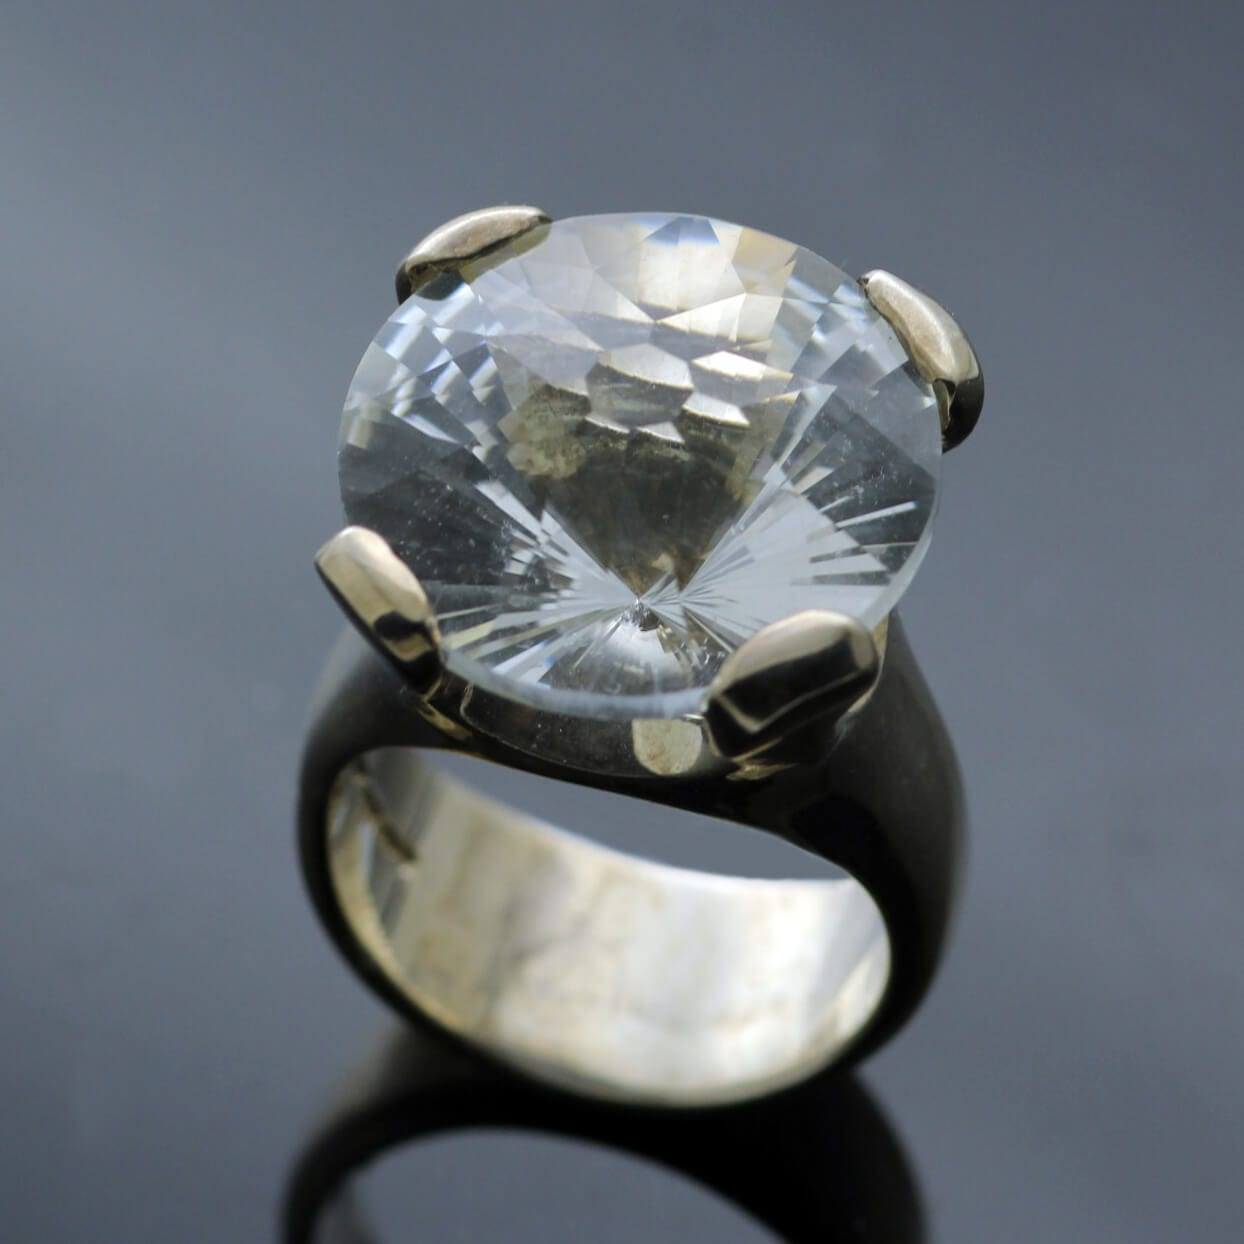 Contemporary White Topaz fancy cut gemstone silver handmade ring